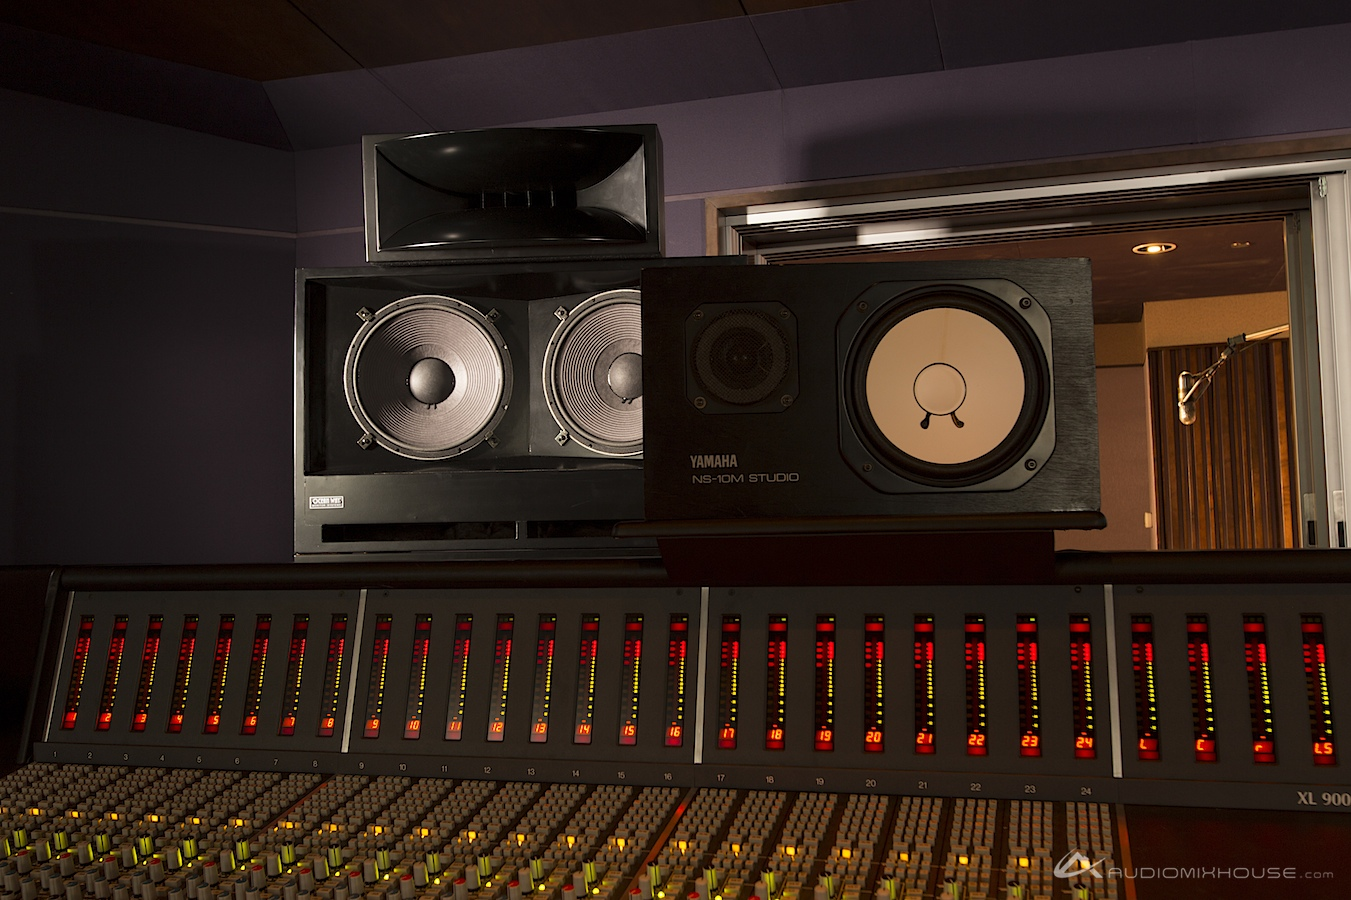 Yamaha Studio Audio